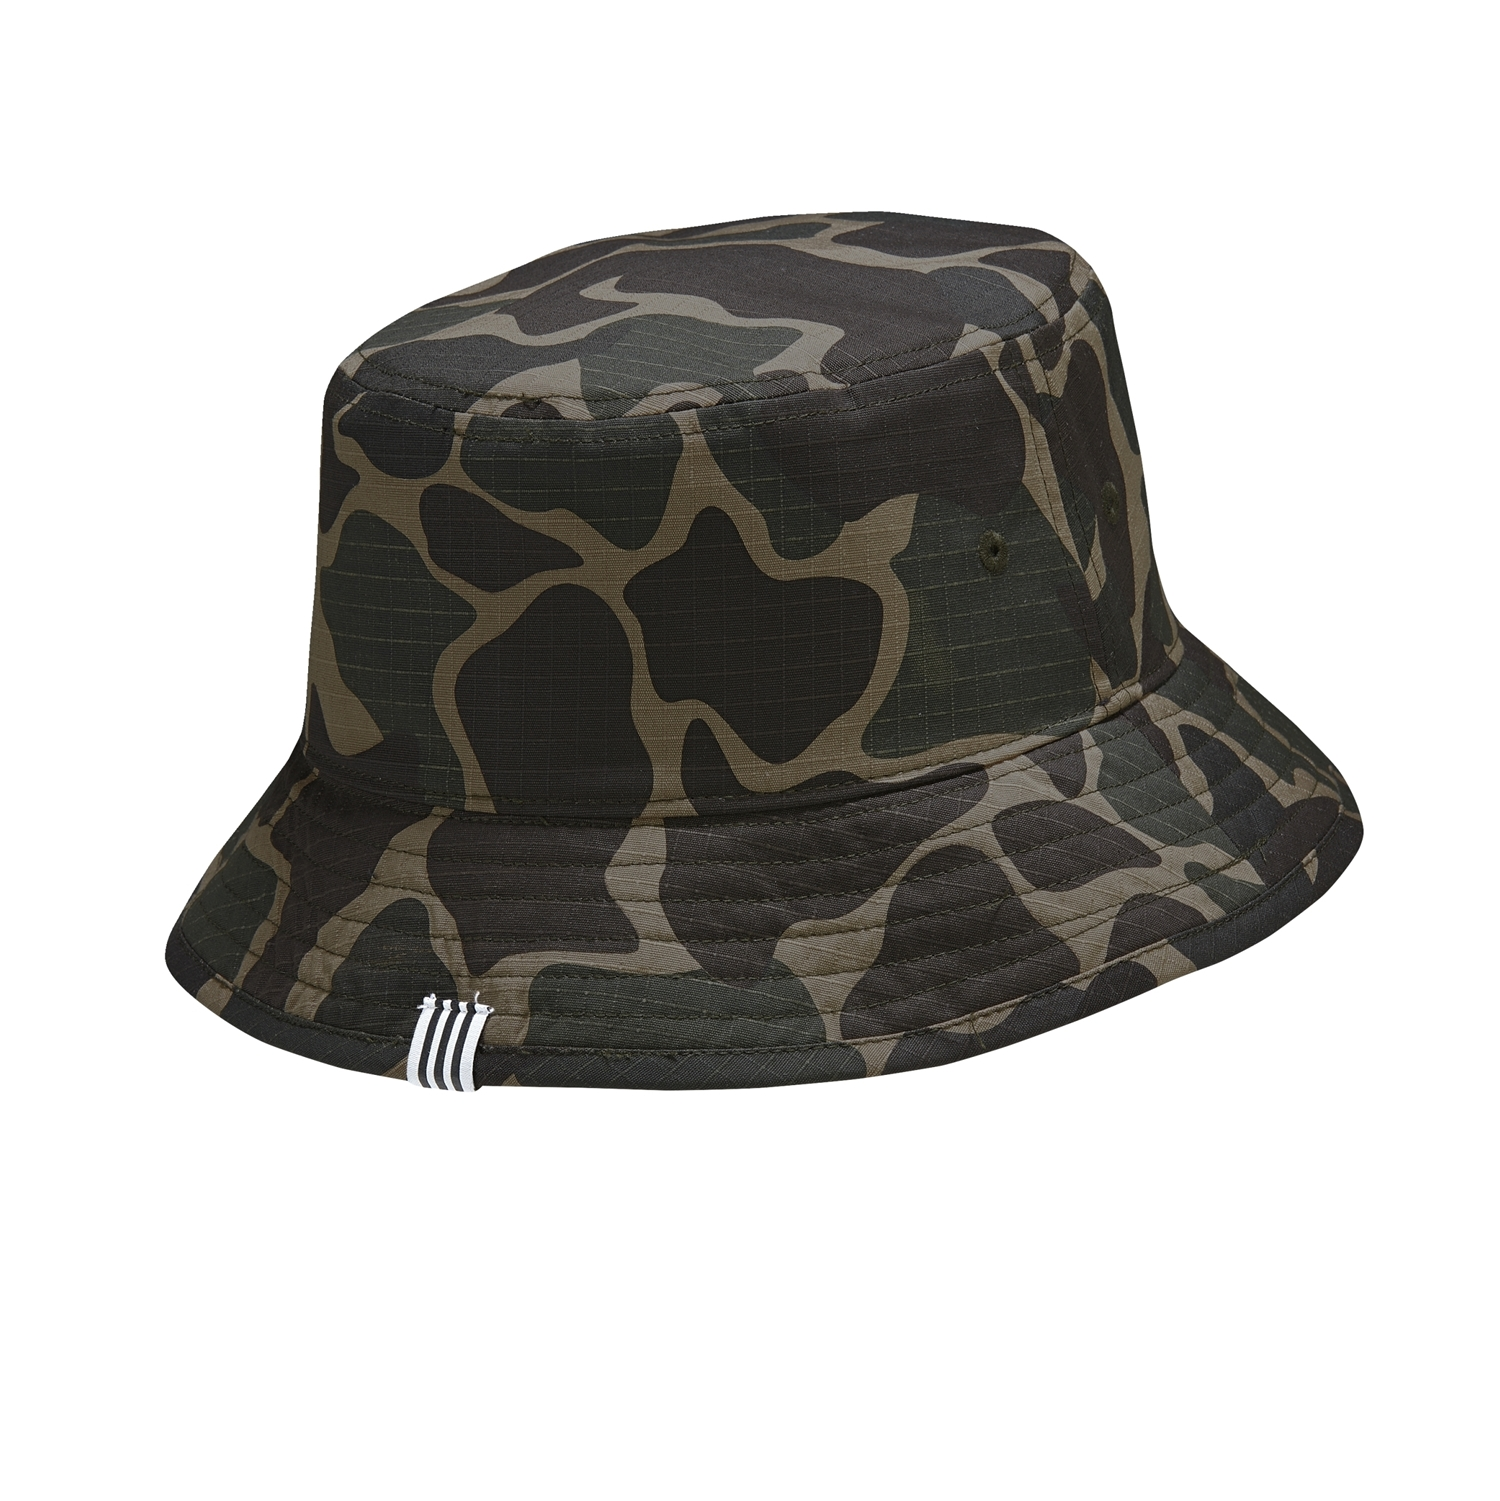 b29a773f363 Adidas Originals Bucket Hat Camo